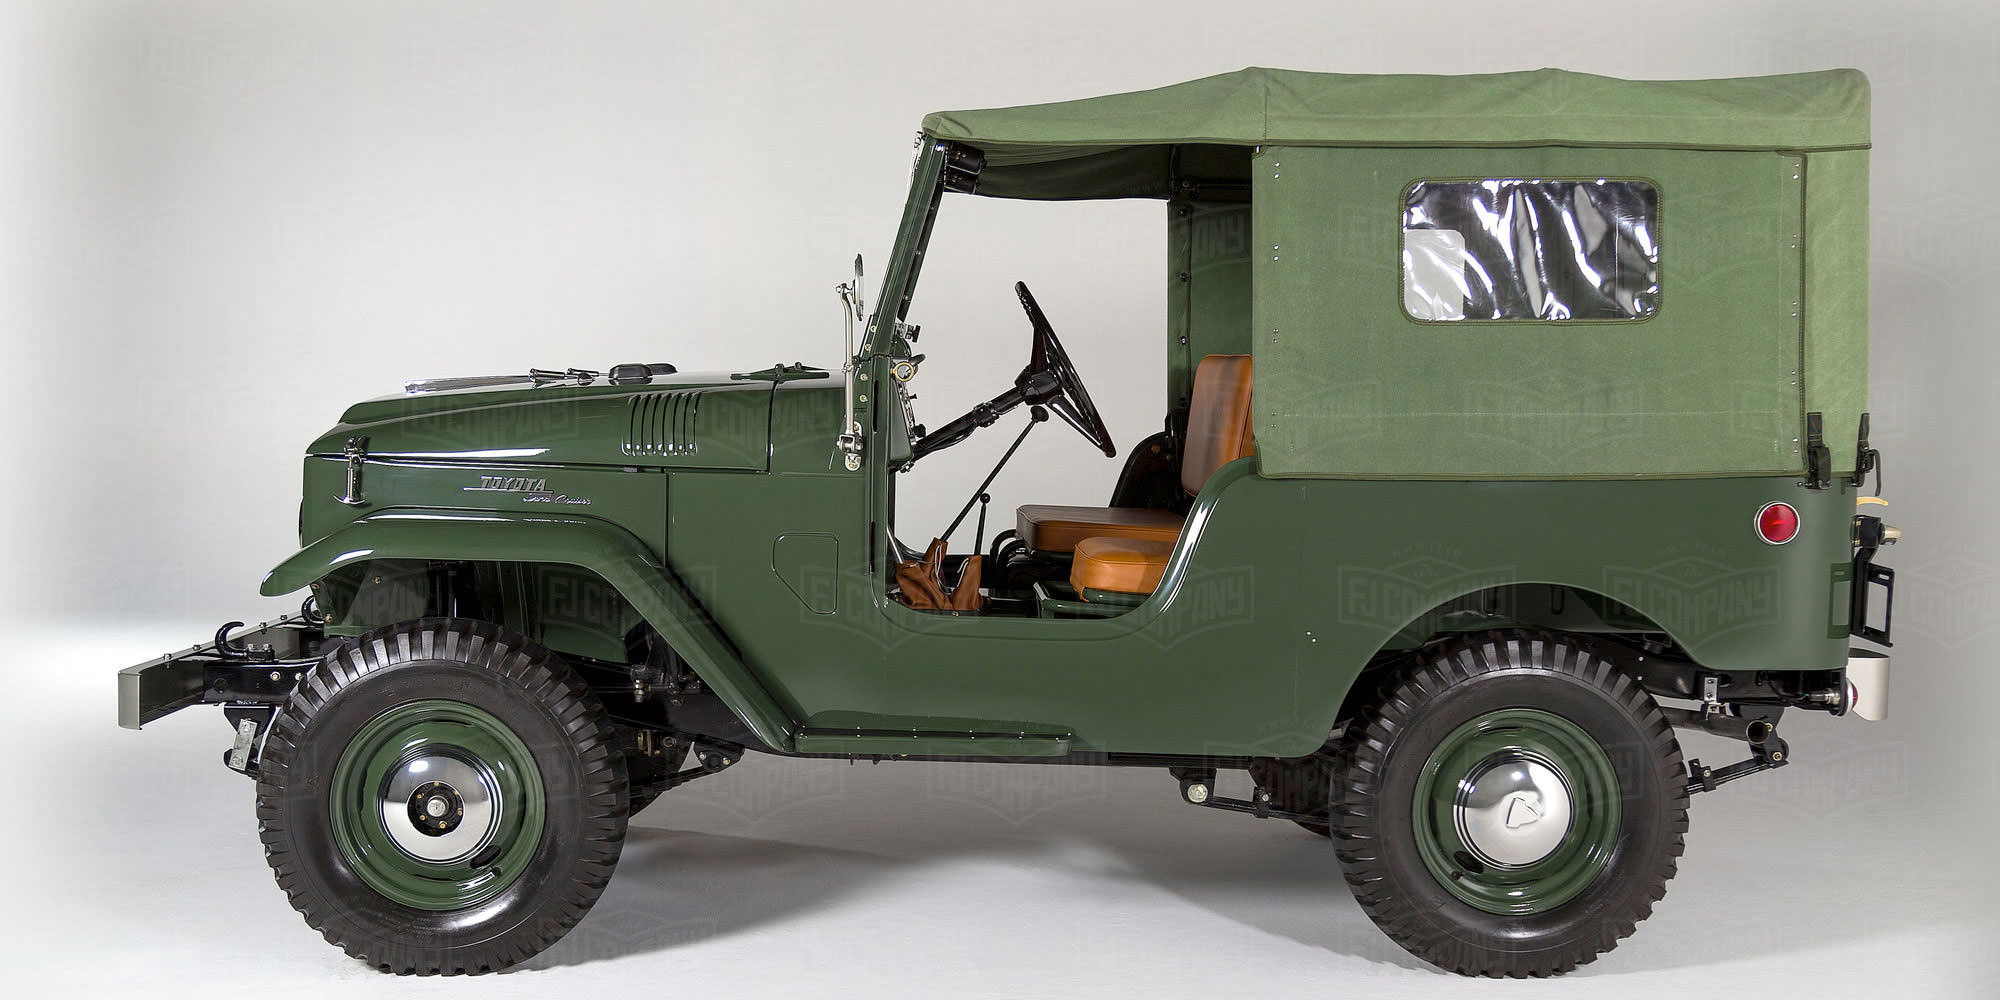 1960 Toyota Land Cruiser FJ25 Army Green FJ25